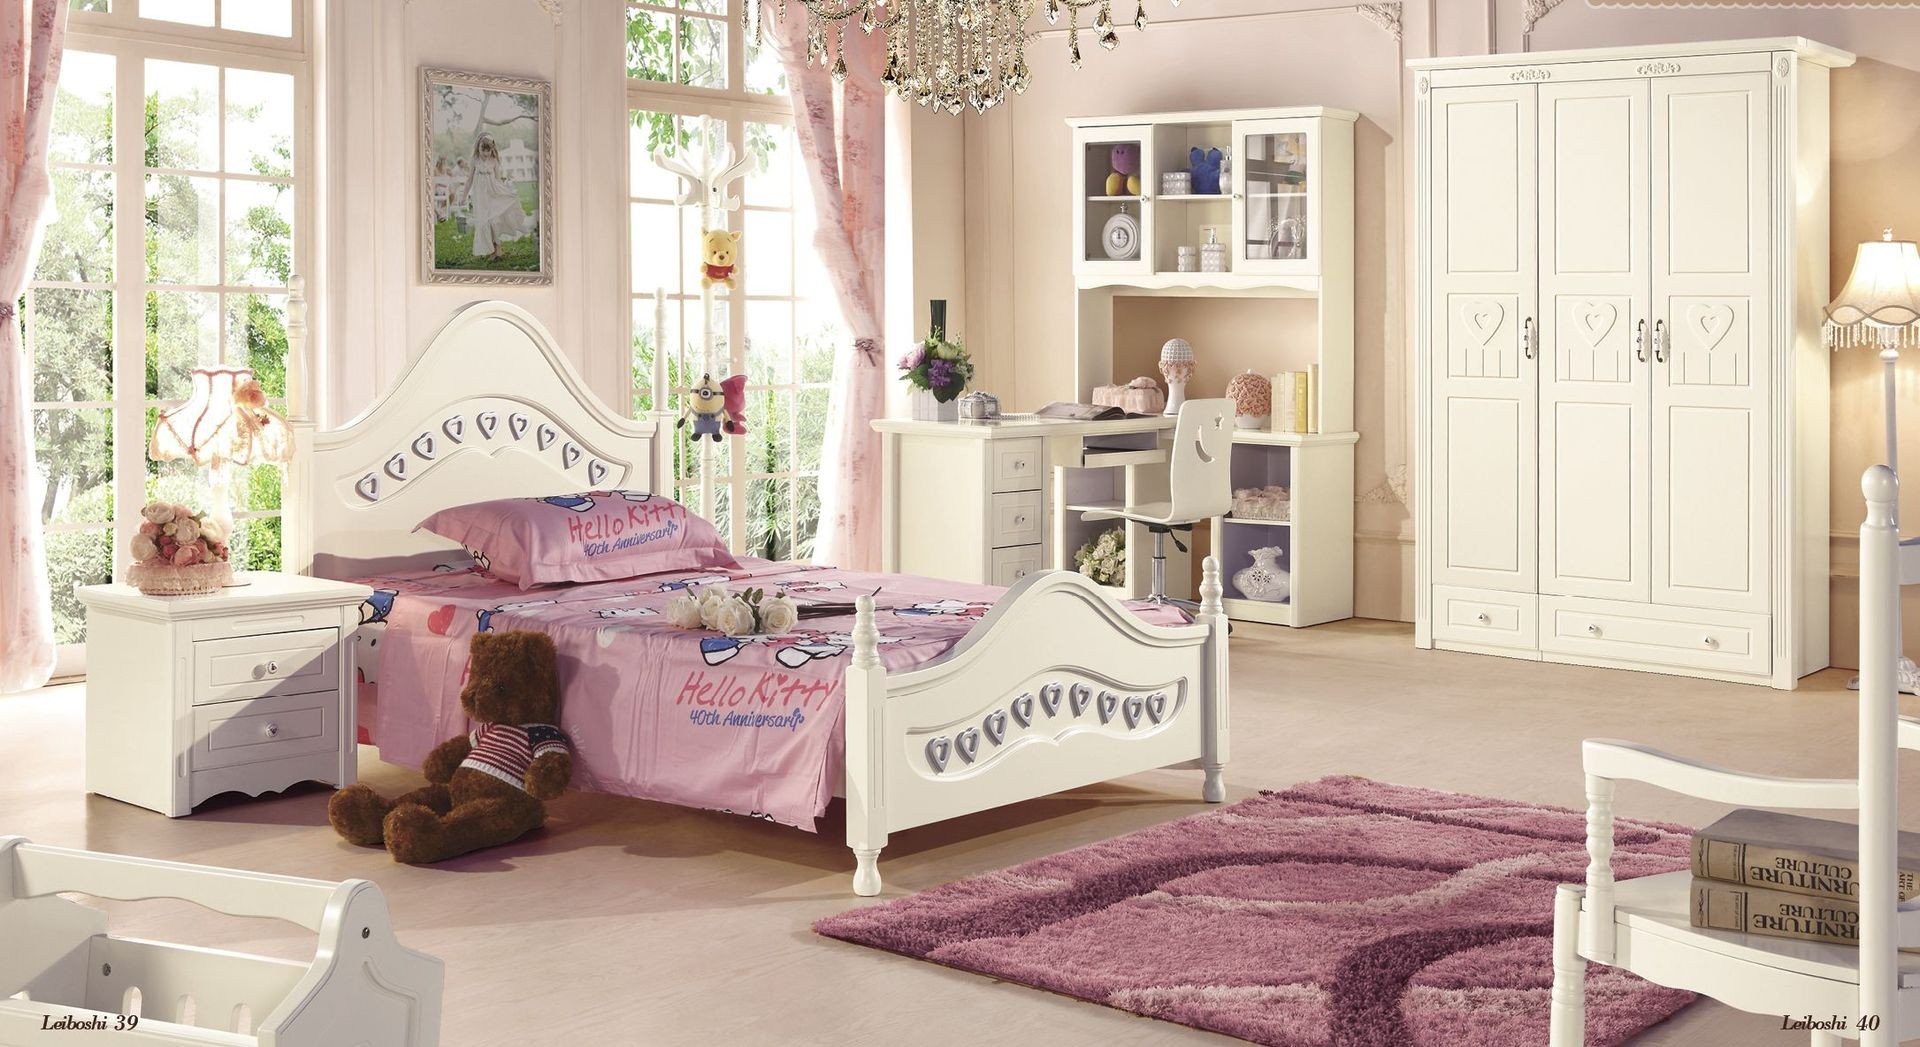 Toddlers Bedroom Furniture Set Elegant solid Wood Bedroom Furniture for Kids